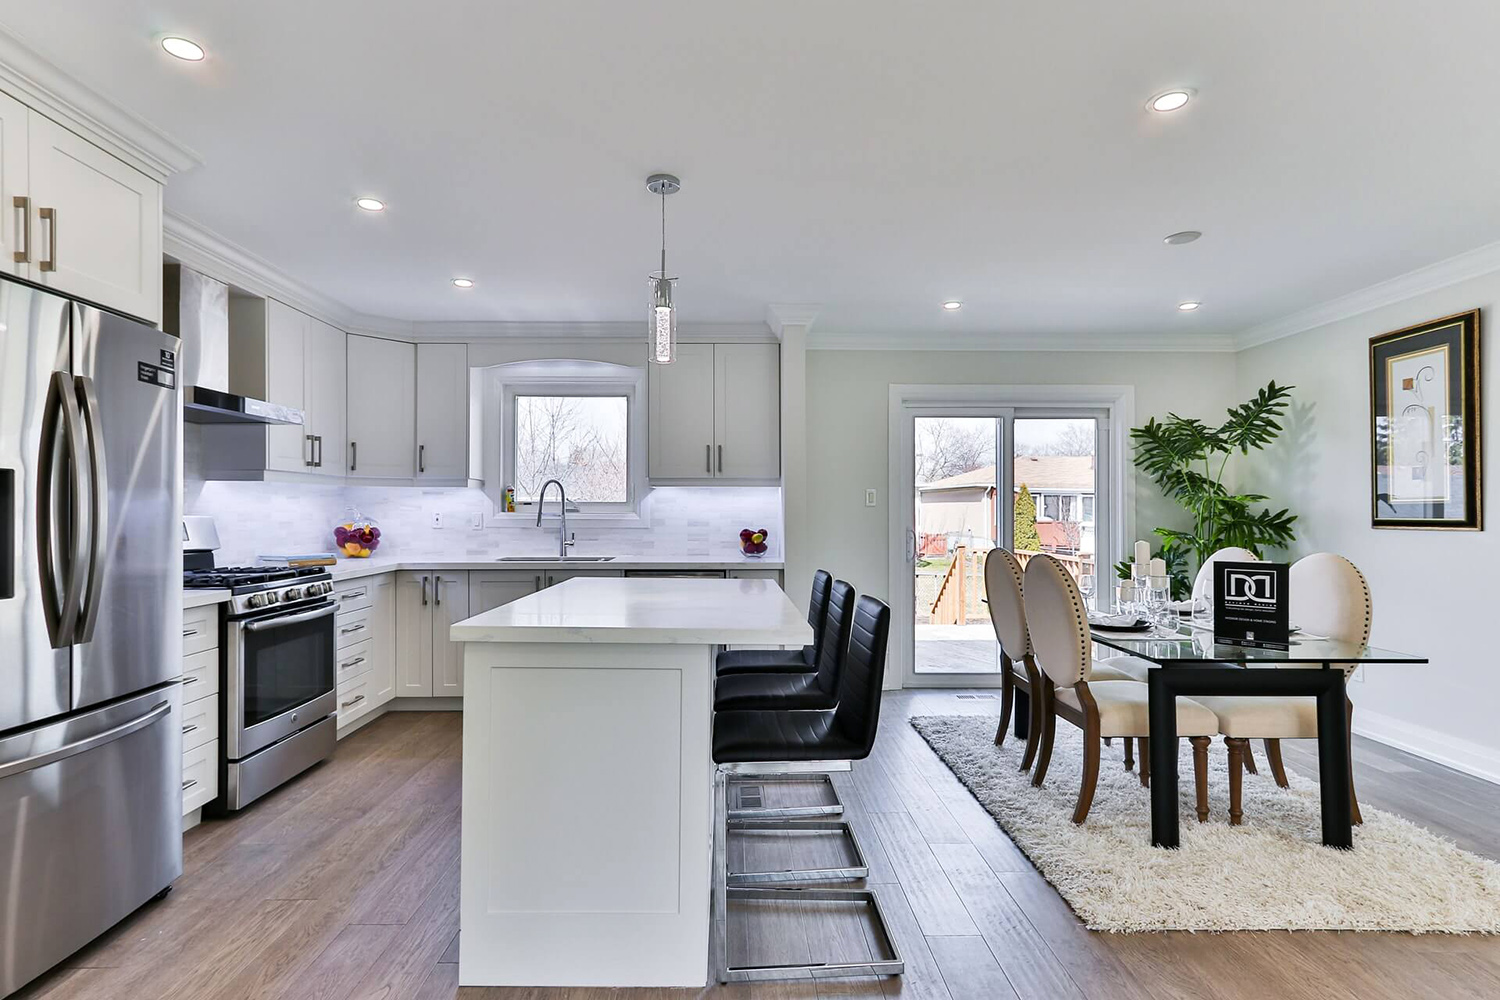 beautifully designed kitchen with classy dining furniture